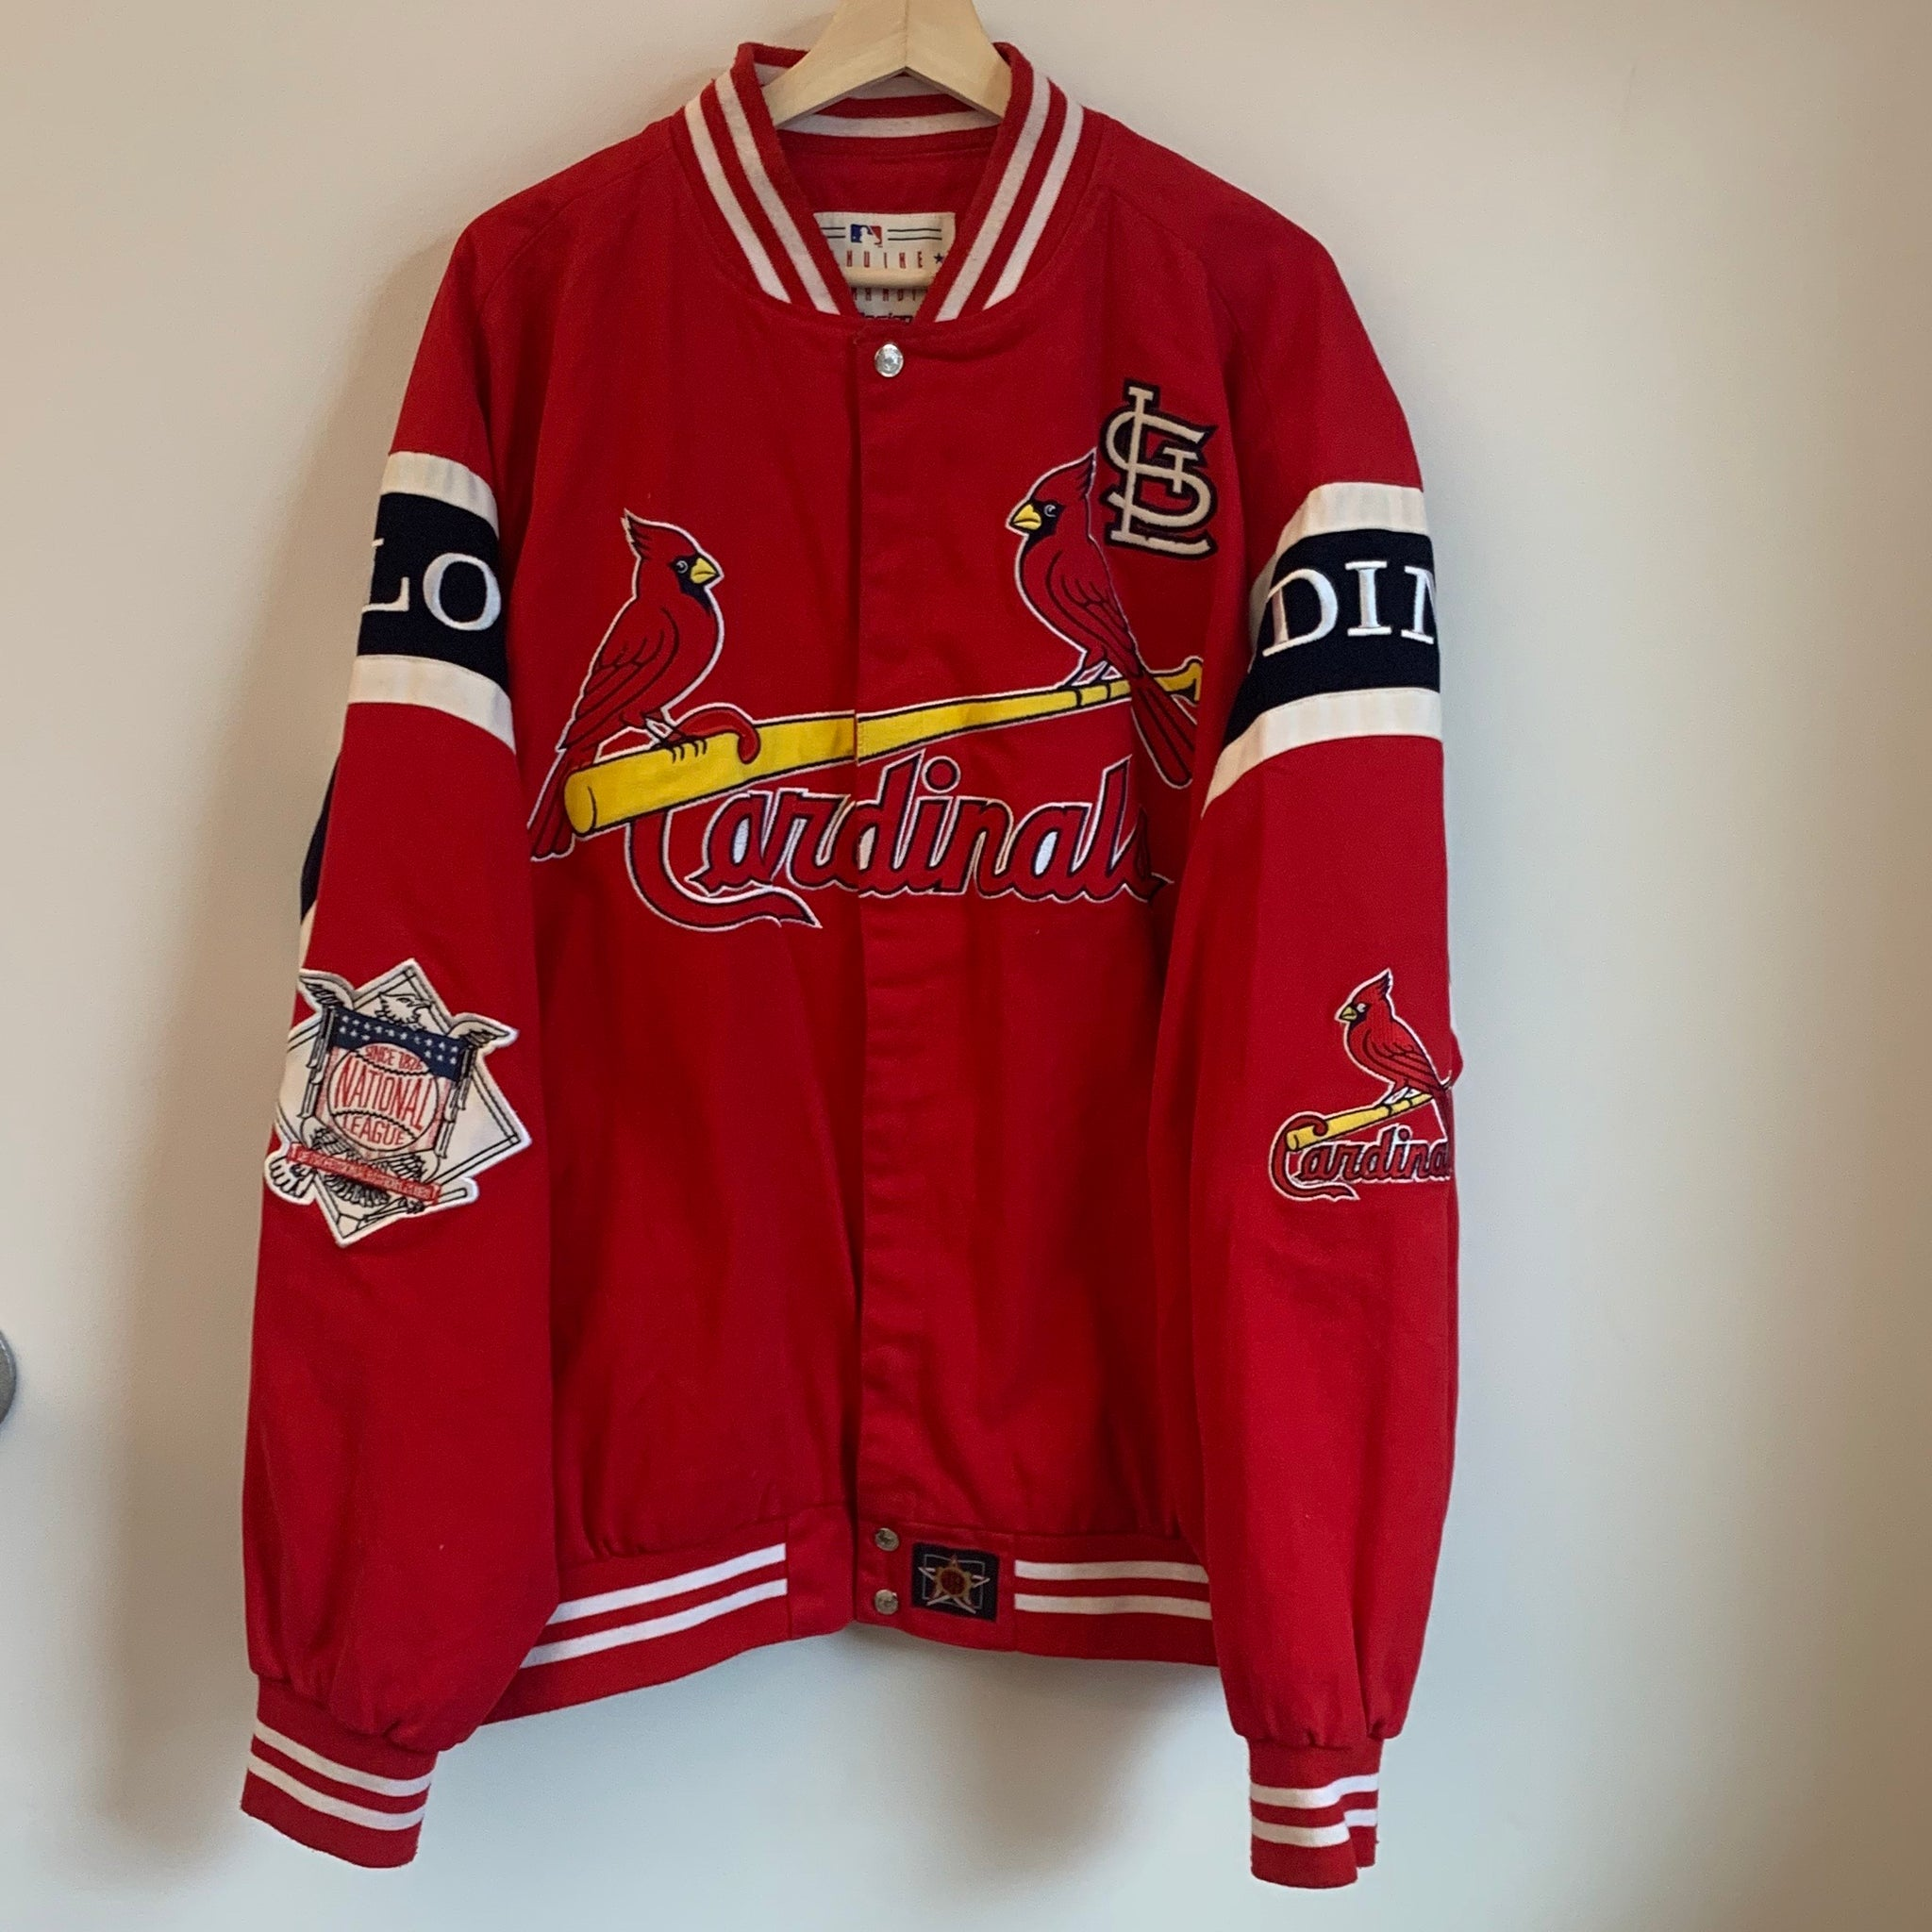 Jeff Hamilton St. Louis Cardinals Red Twill Jacket